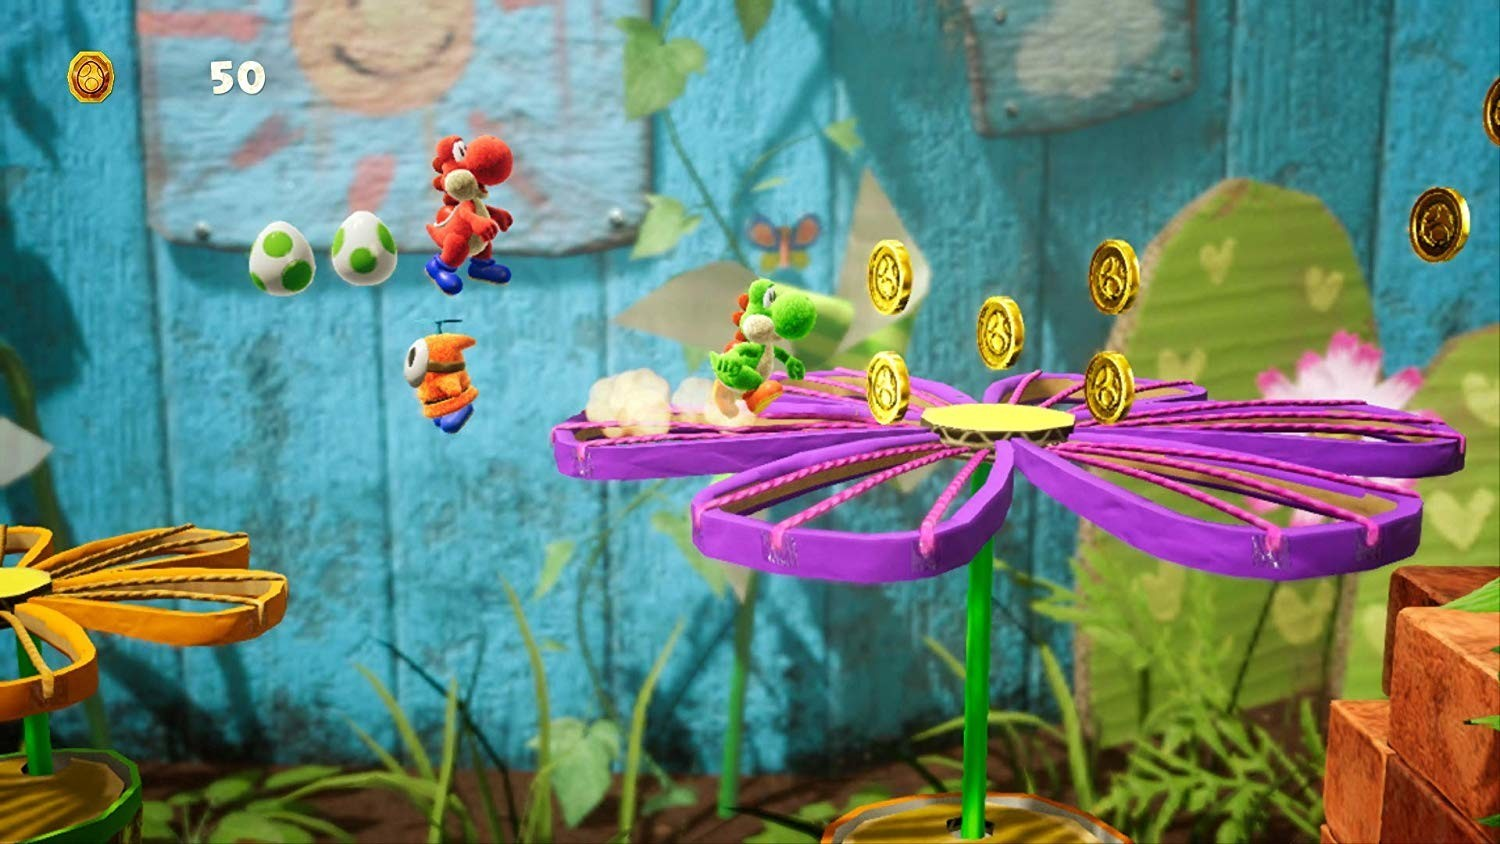 Yoshi's Crafted World MacBook OS X Version gameplay